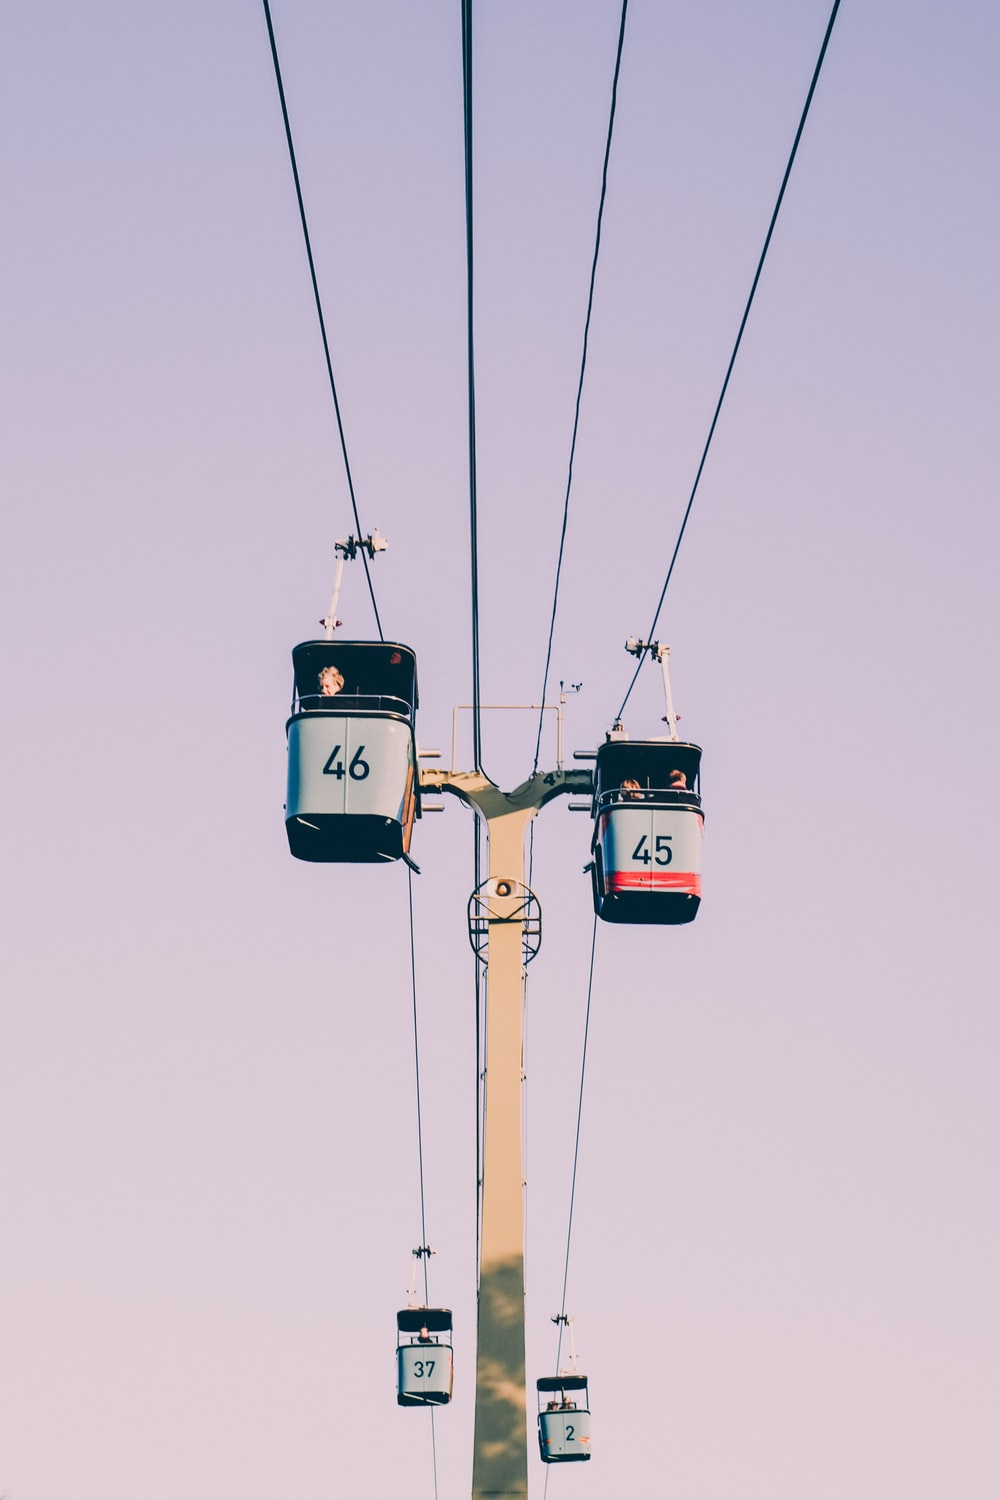 four black-and-gray cable cars crossing